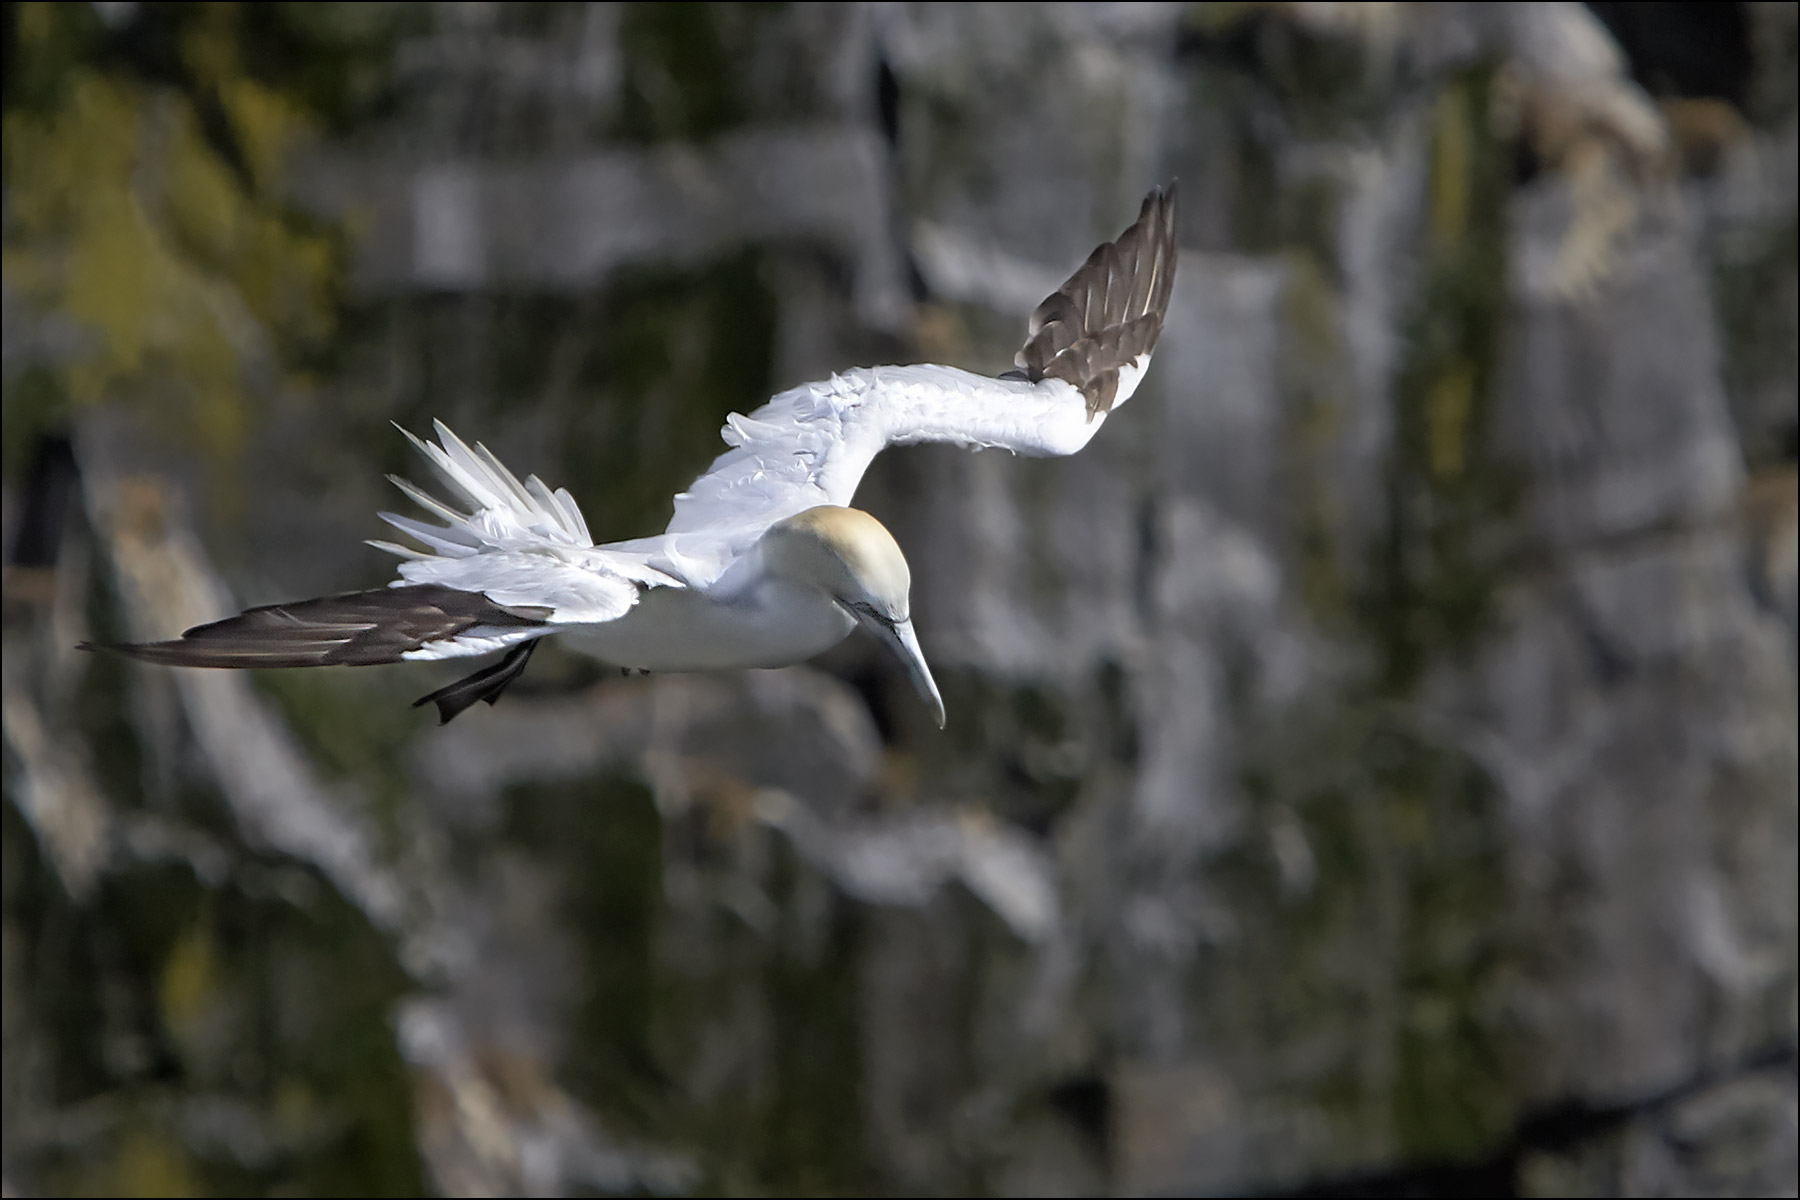 Northern Gannet, Cape St. Mary's Ecological Reserve ©johncameron.ca